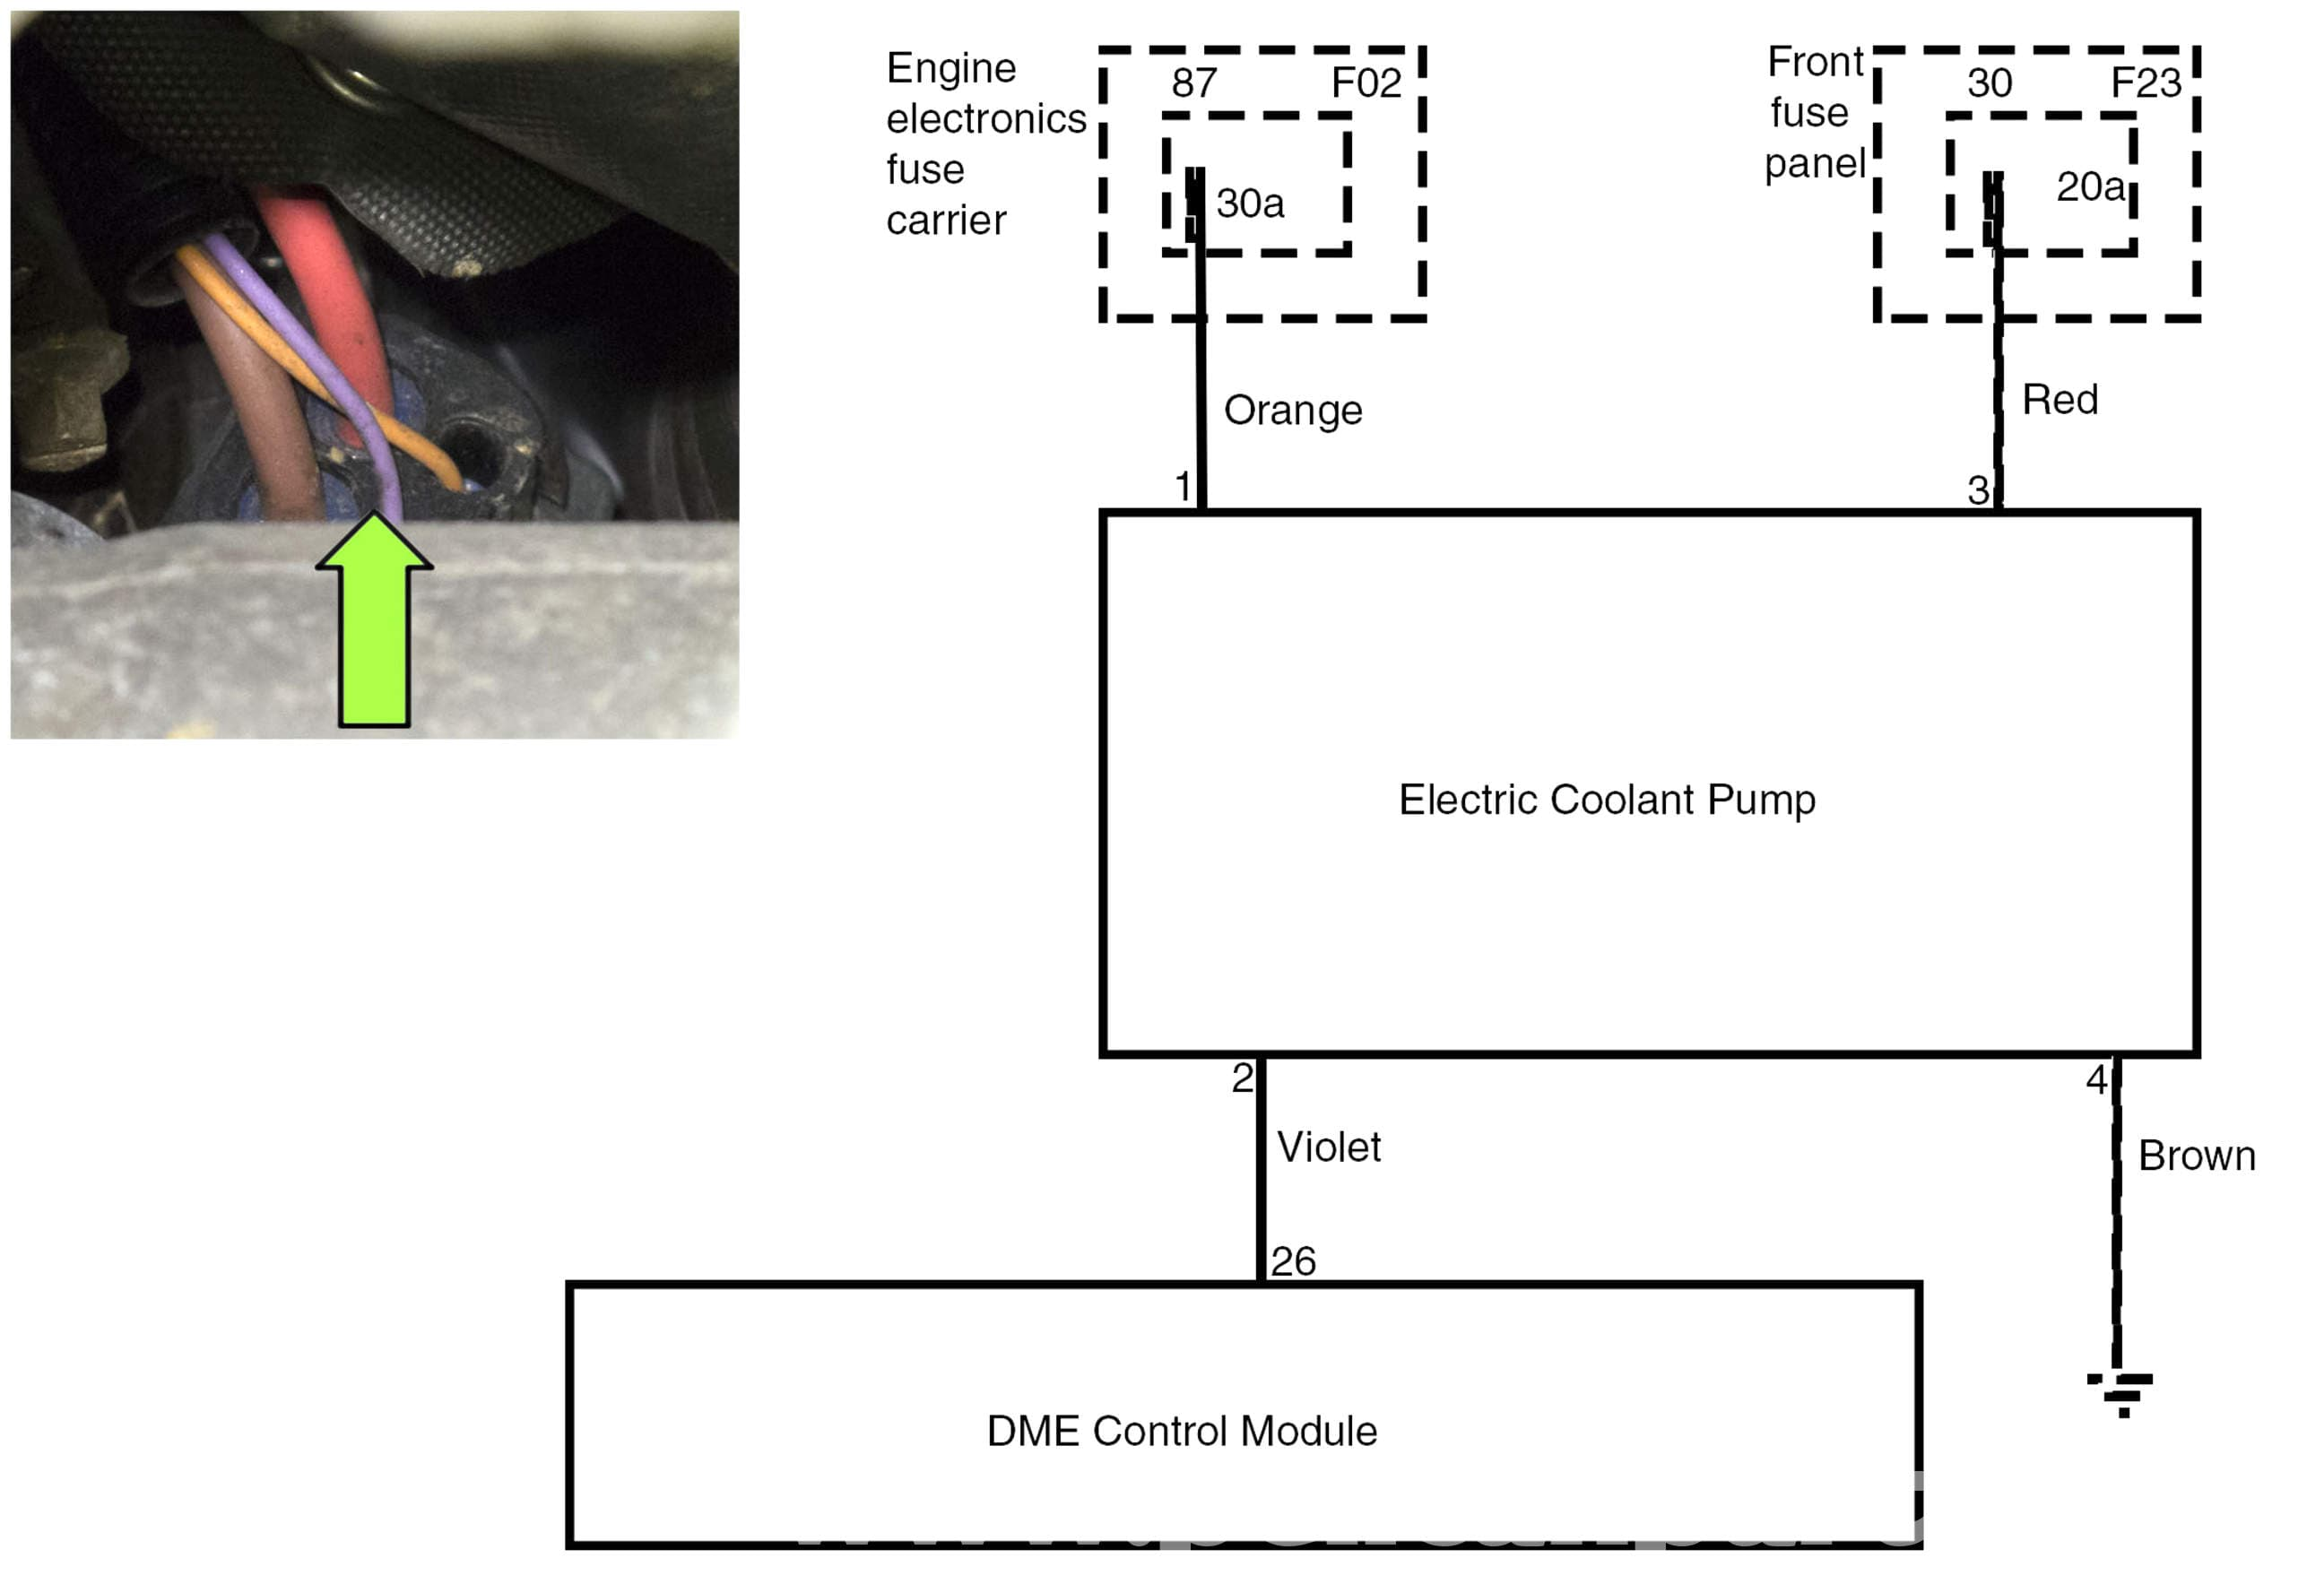 wiring diagram bmw f wiring image wiring diagram bmw e60 headlight wiring diagram bmw auto wiring diagram schematic on wiring diagram bmw f10